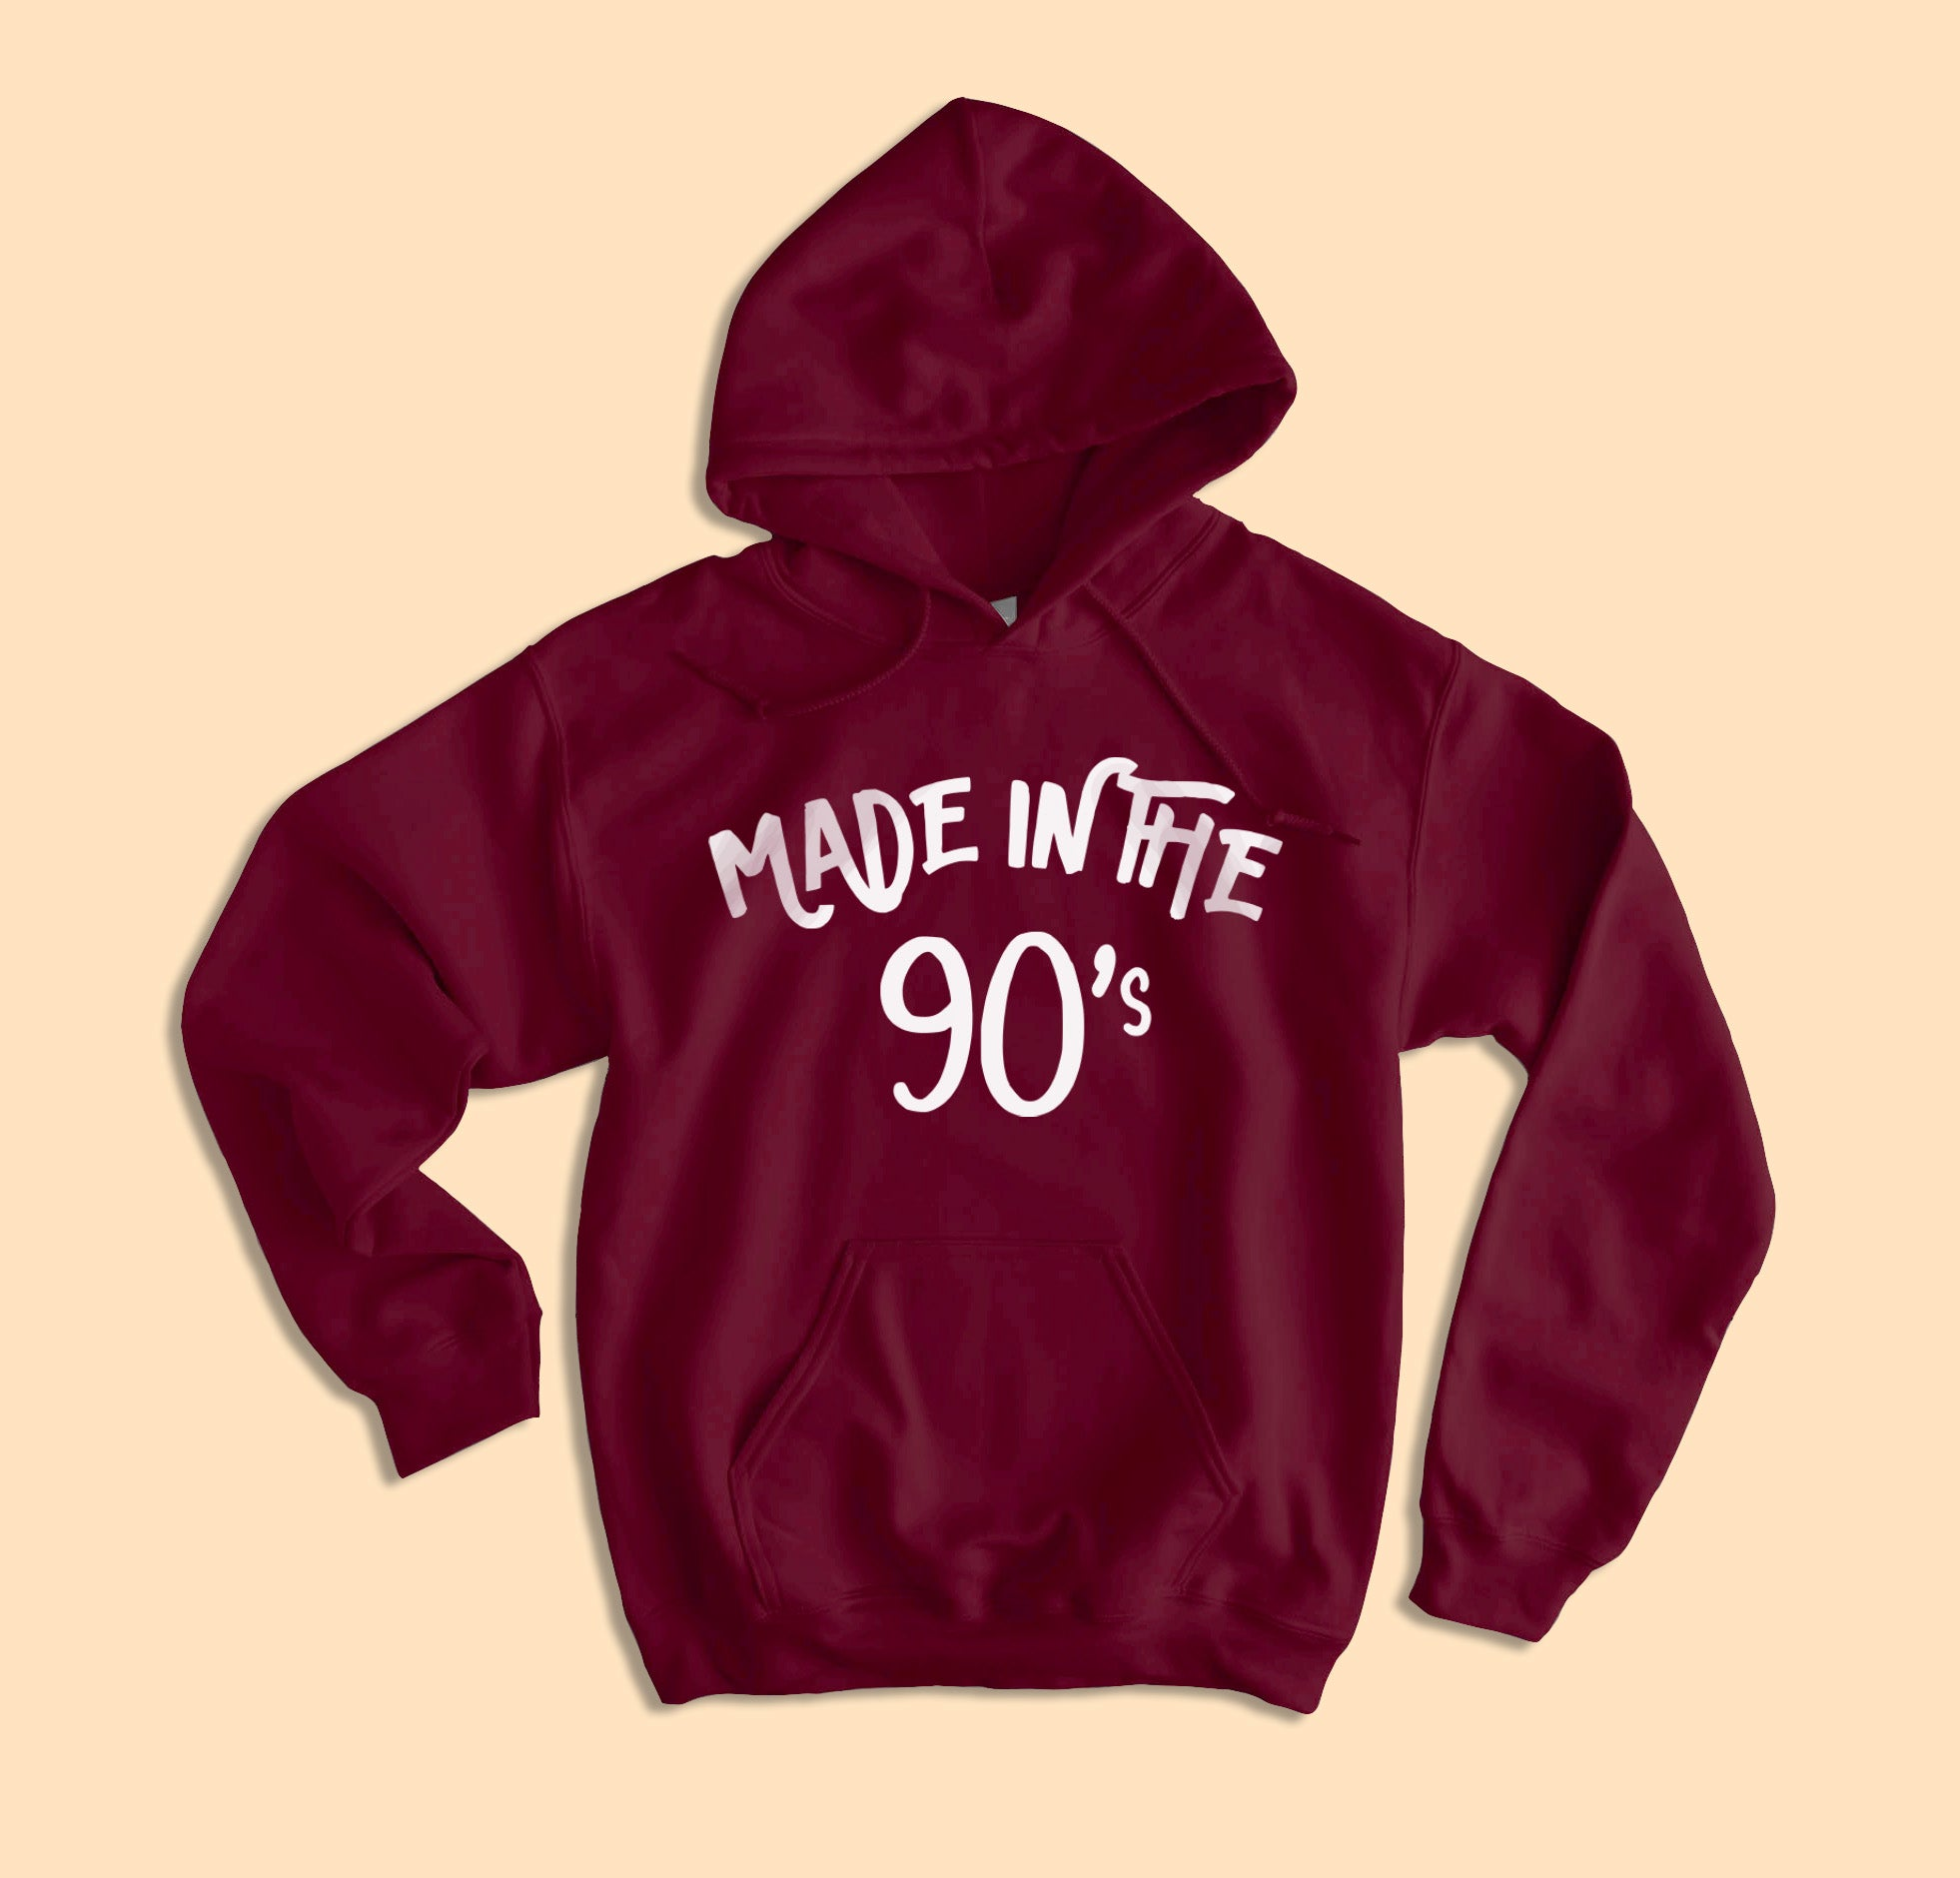 Made In The 90's Hoodie